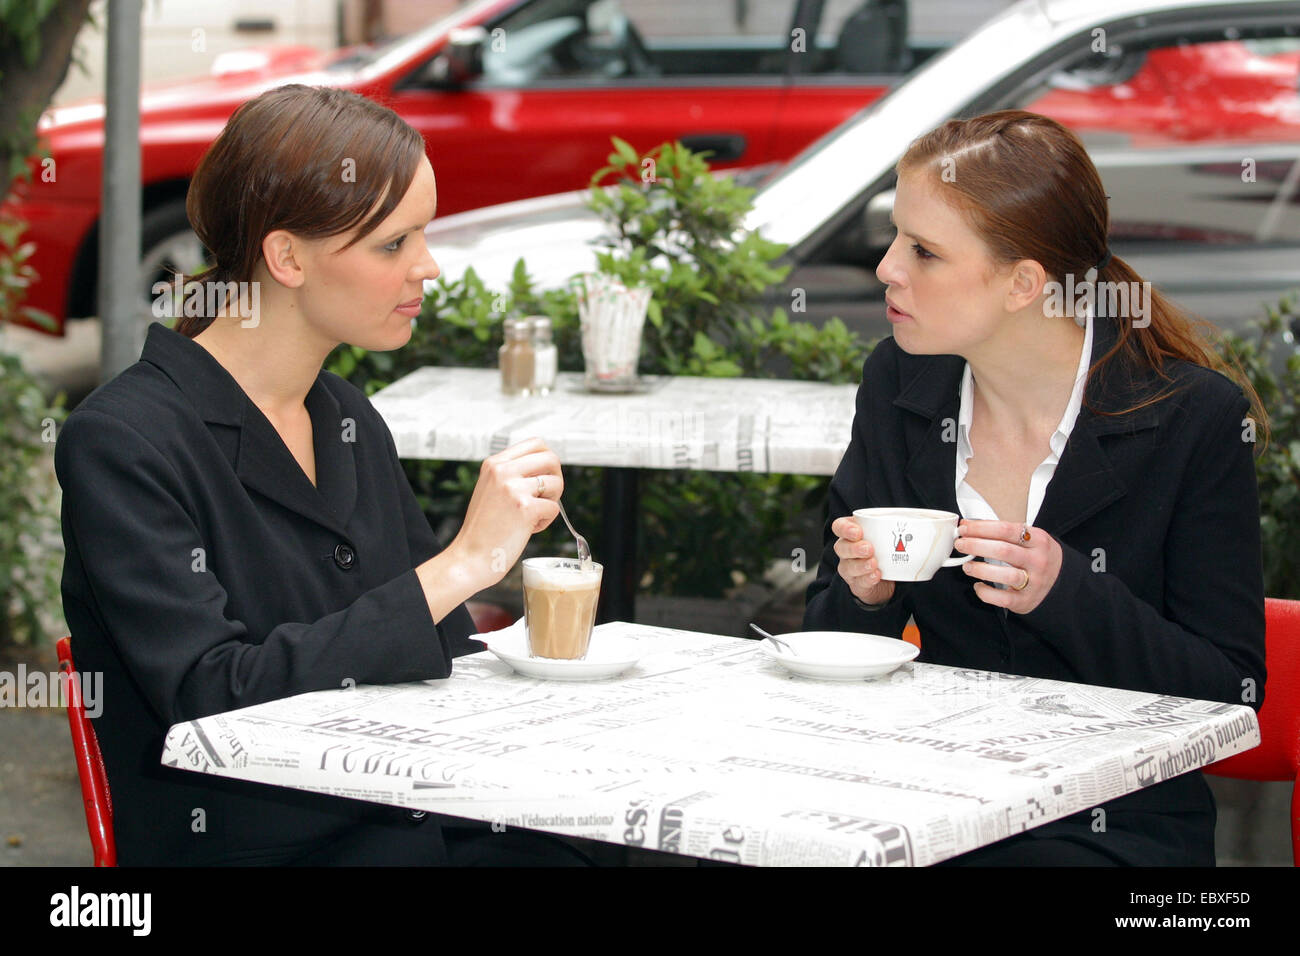 business meeting in cafe - Stock Image